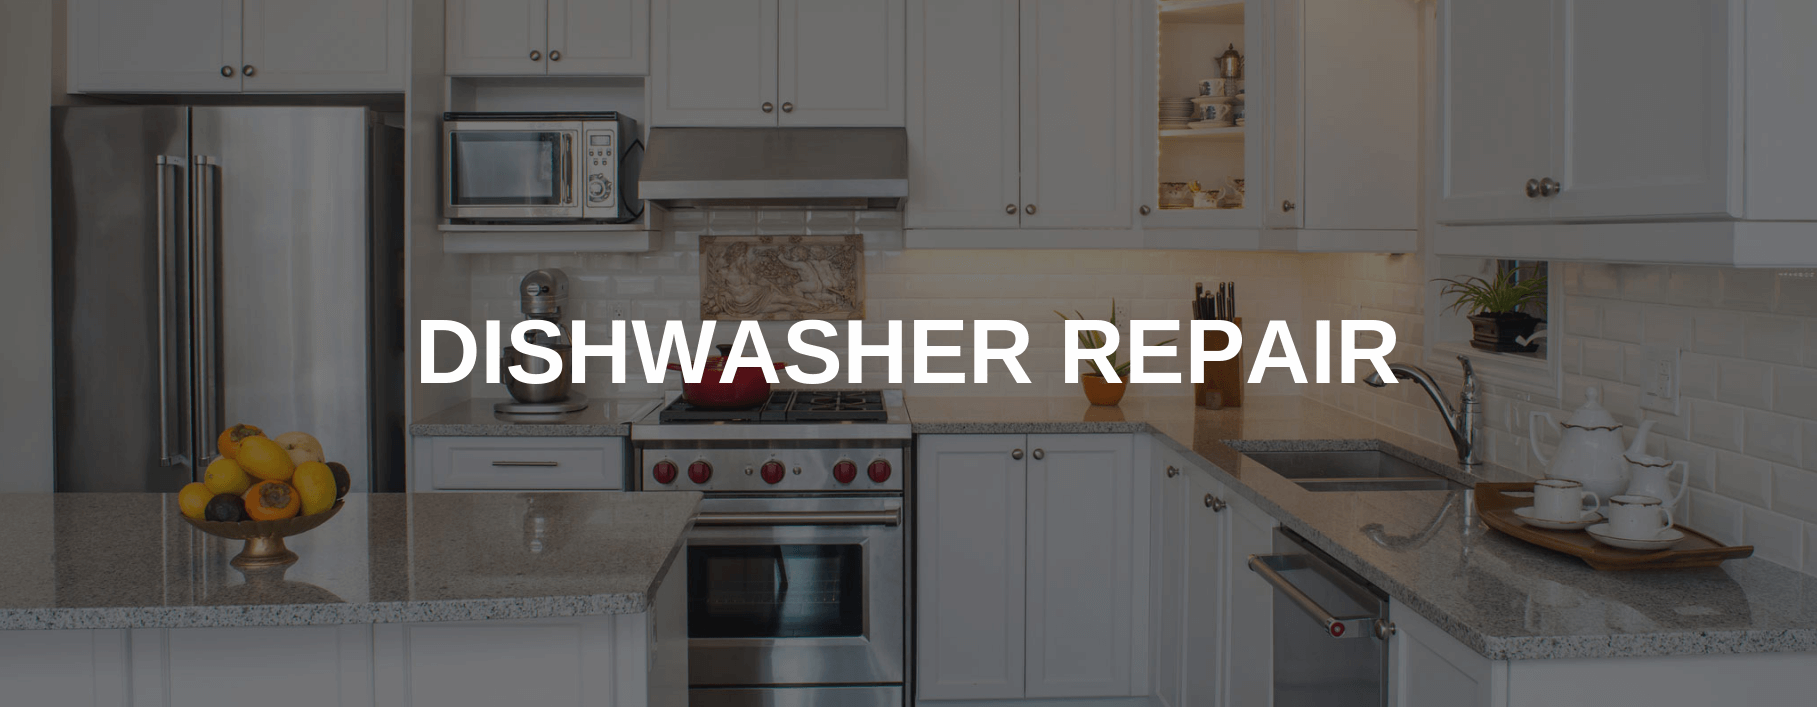 dishwasher repair milford